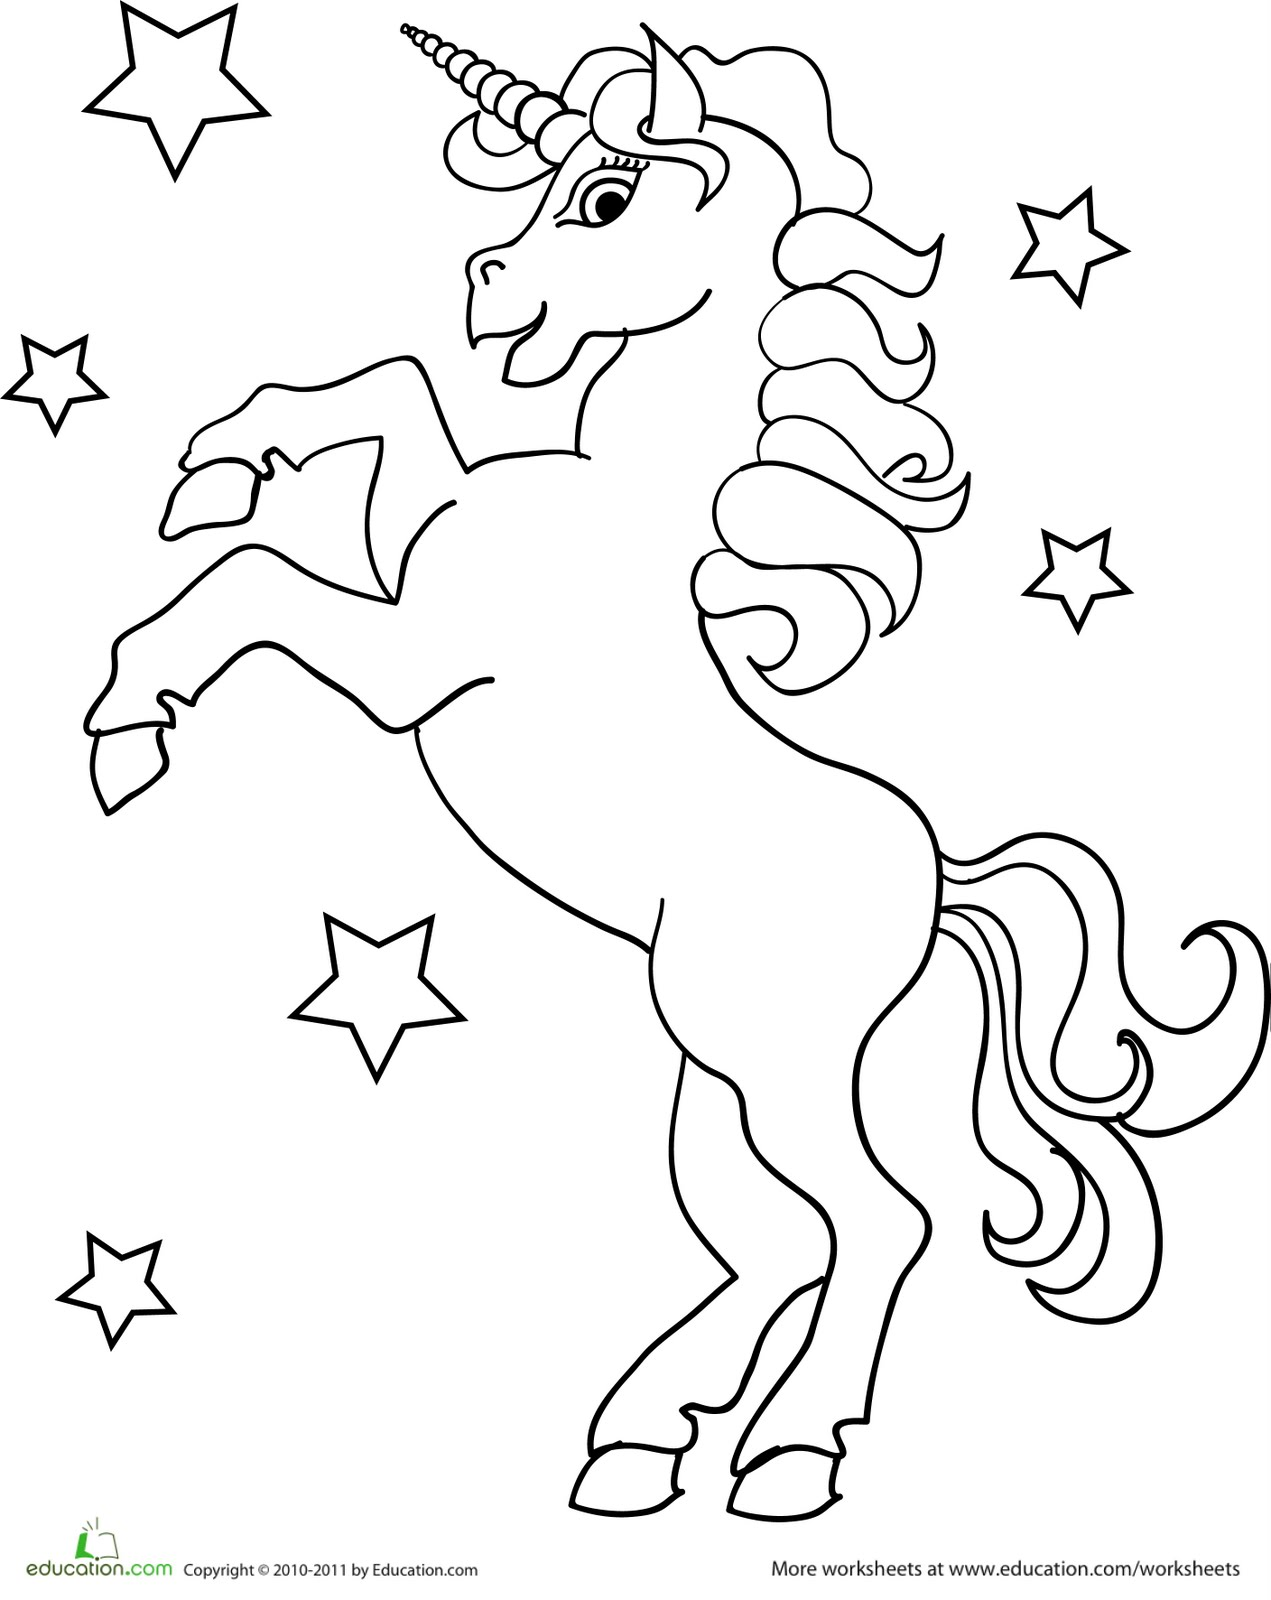 Unicorn Coloring Book : Free unicorn maze coloring pages